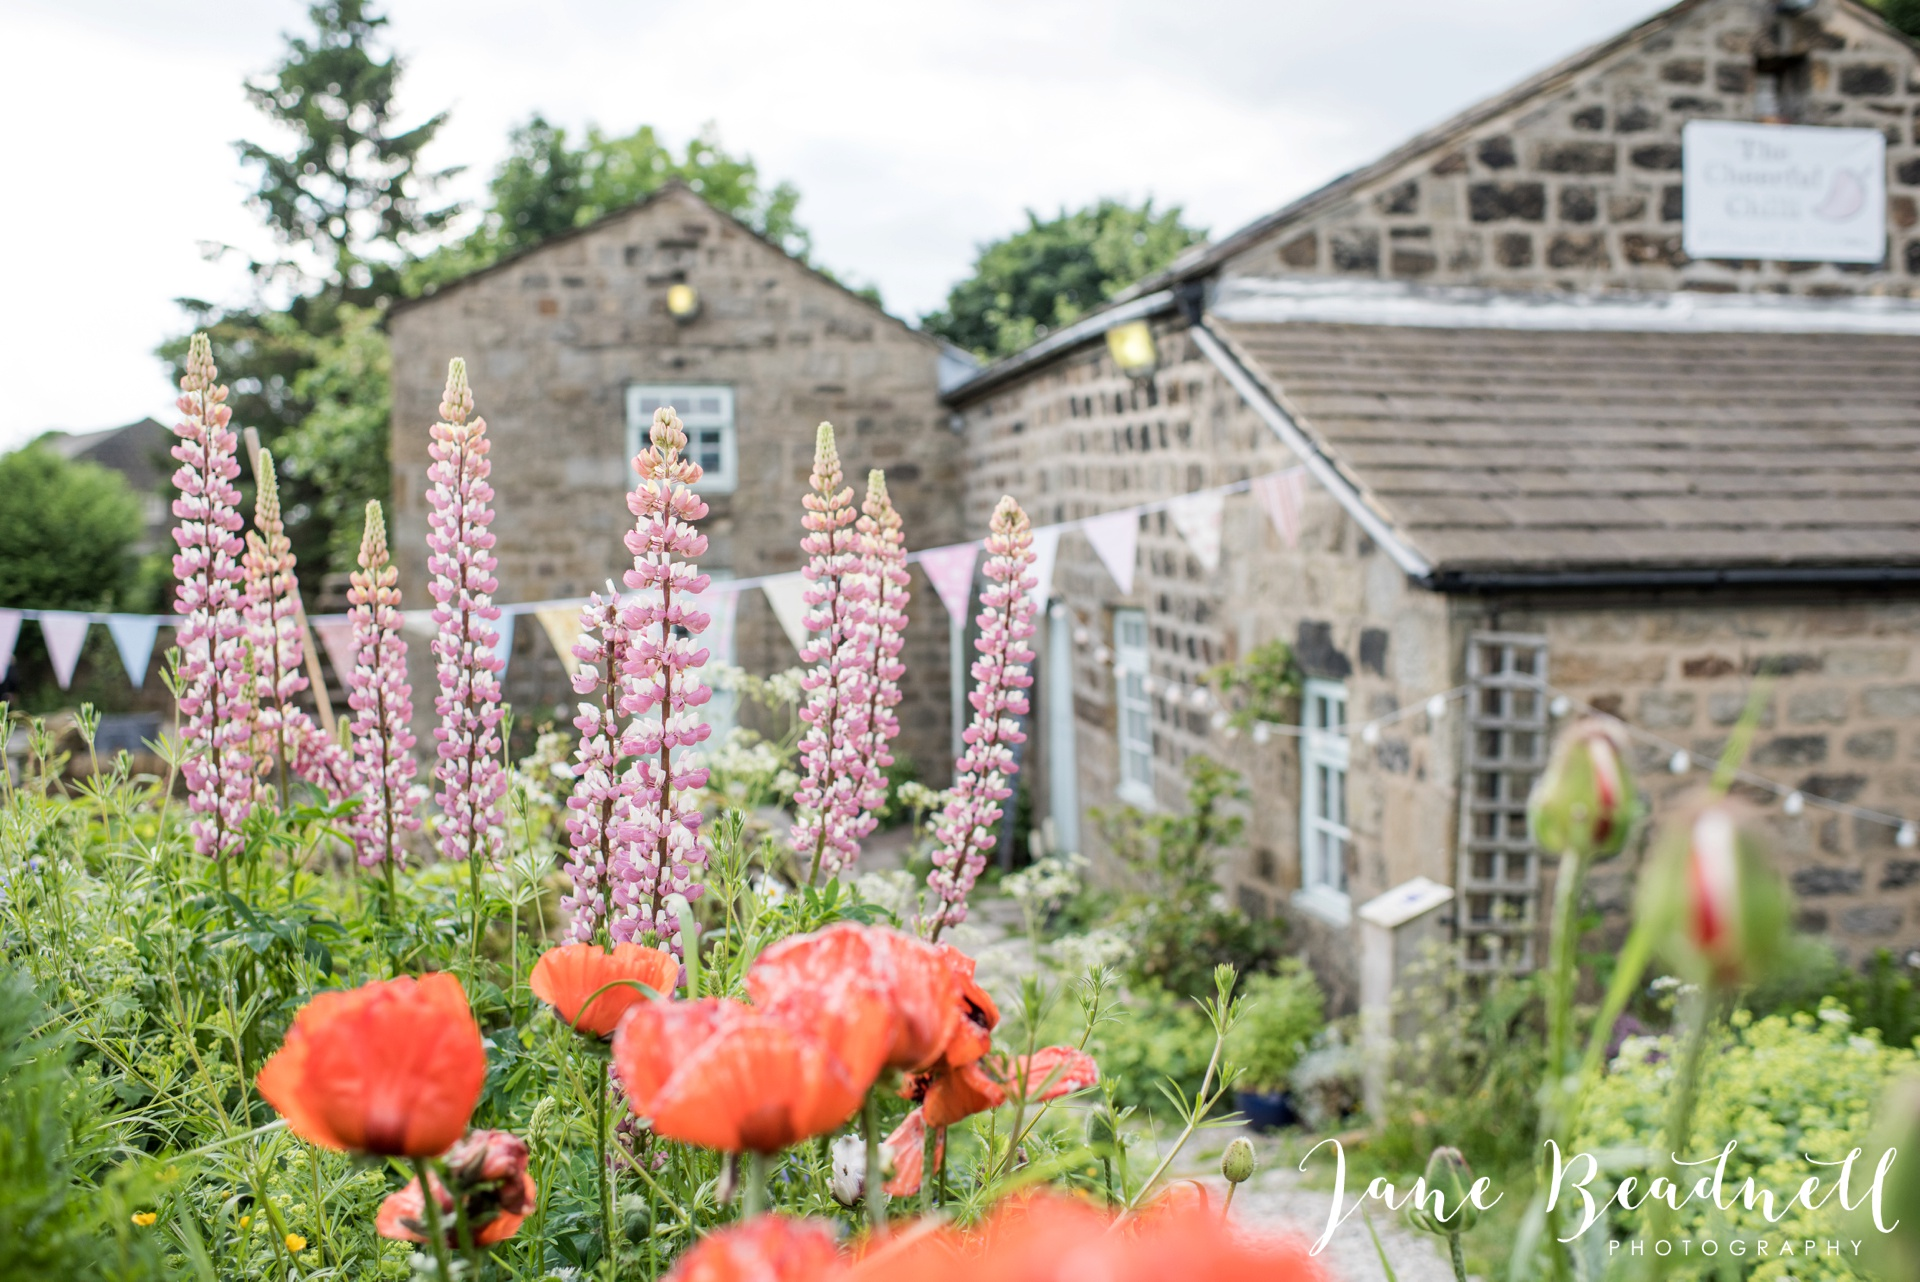 Yorkshire Wedding Photography the cheerful Chilli Barn Wedding by Jane Beadnell Photography_0121